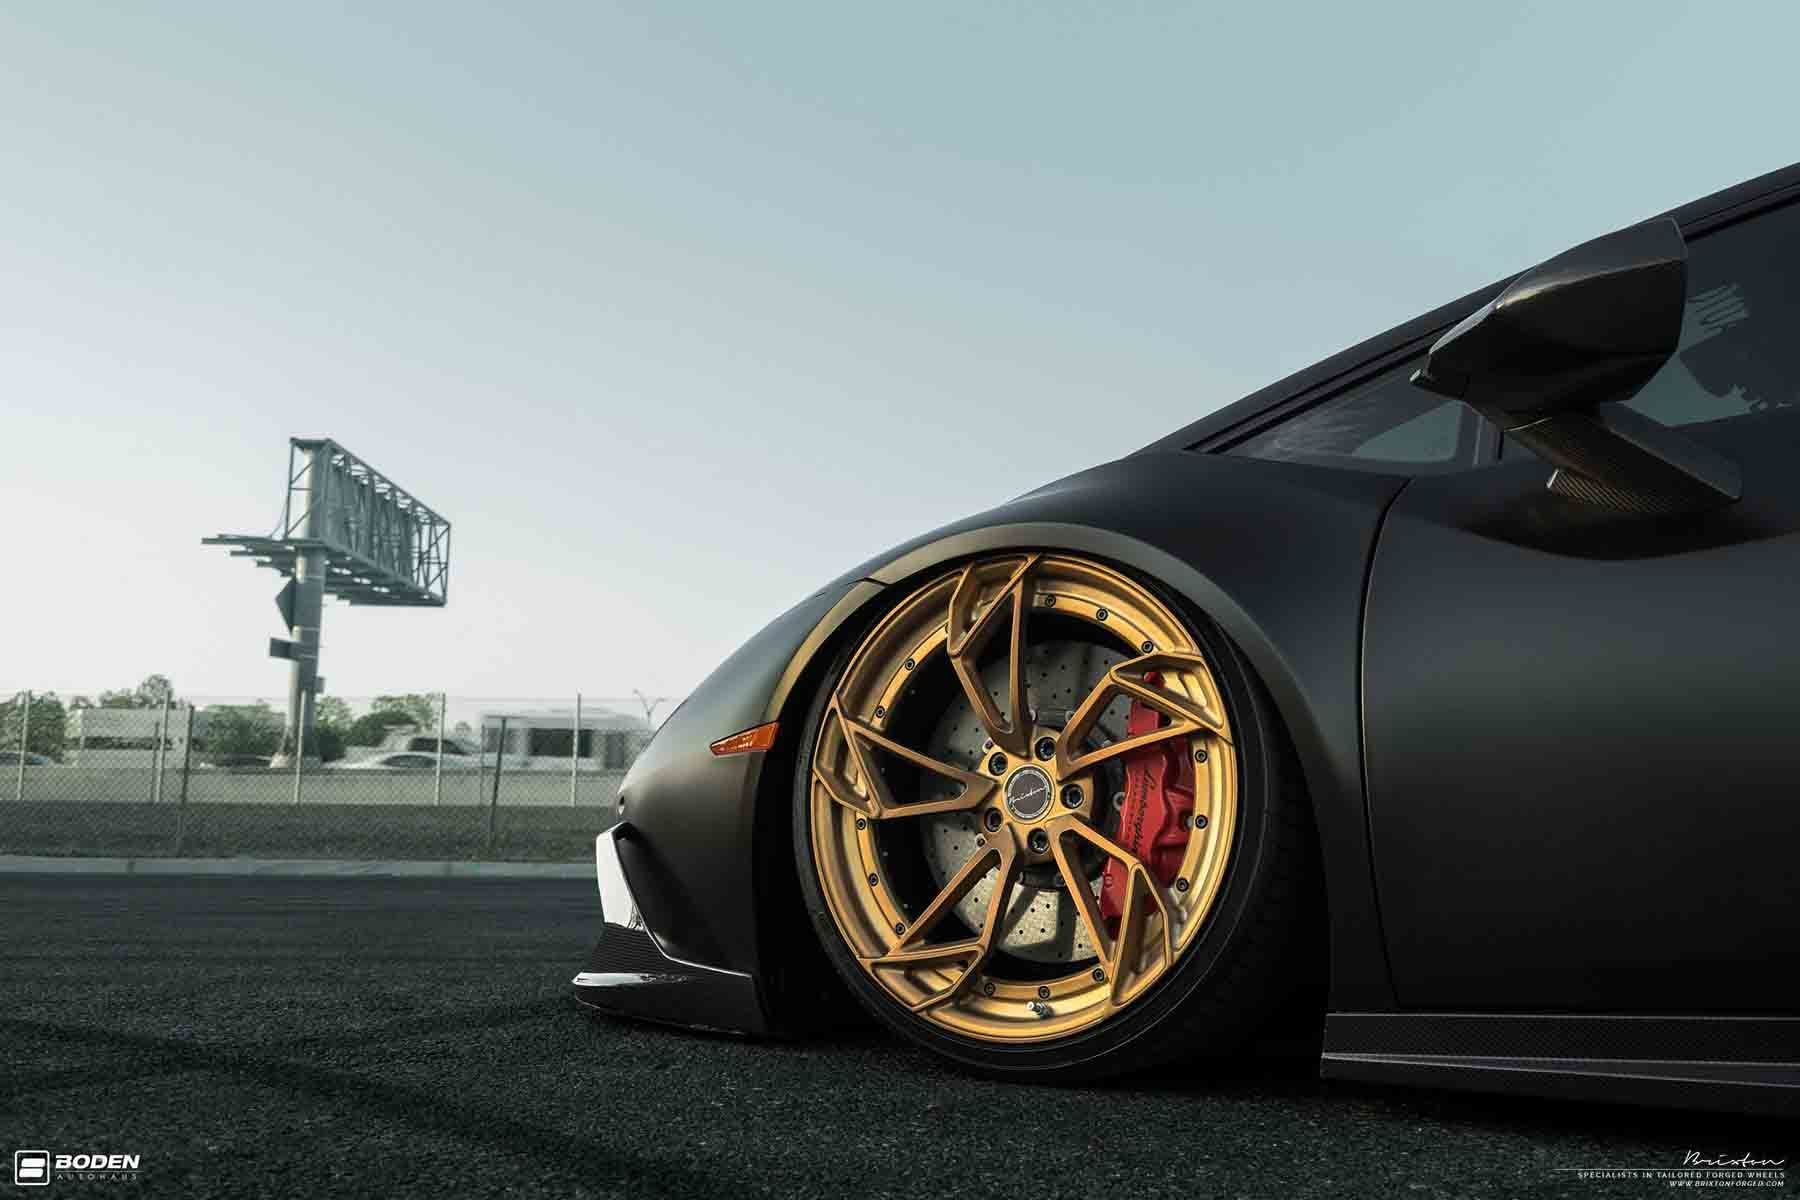 images-products-1-1921-232974209-brixton-forged-wheels-lamborghini-huracan-boden-autohaus-wstbank-bape-camo-brixton-forged-pf1-du.jpg